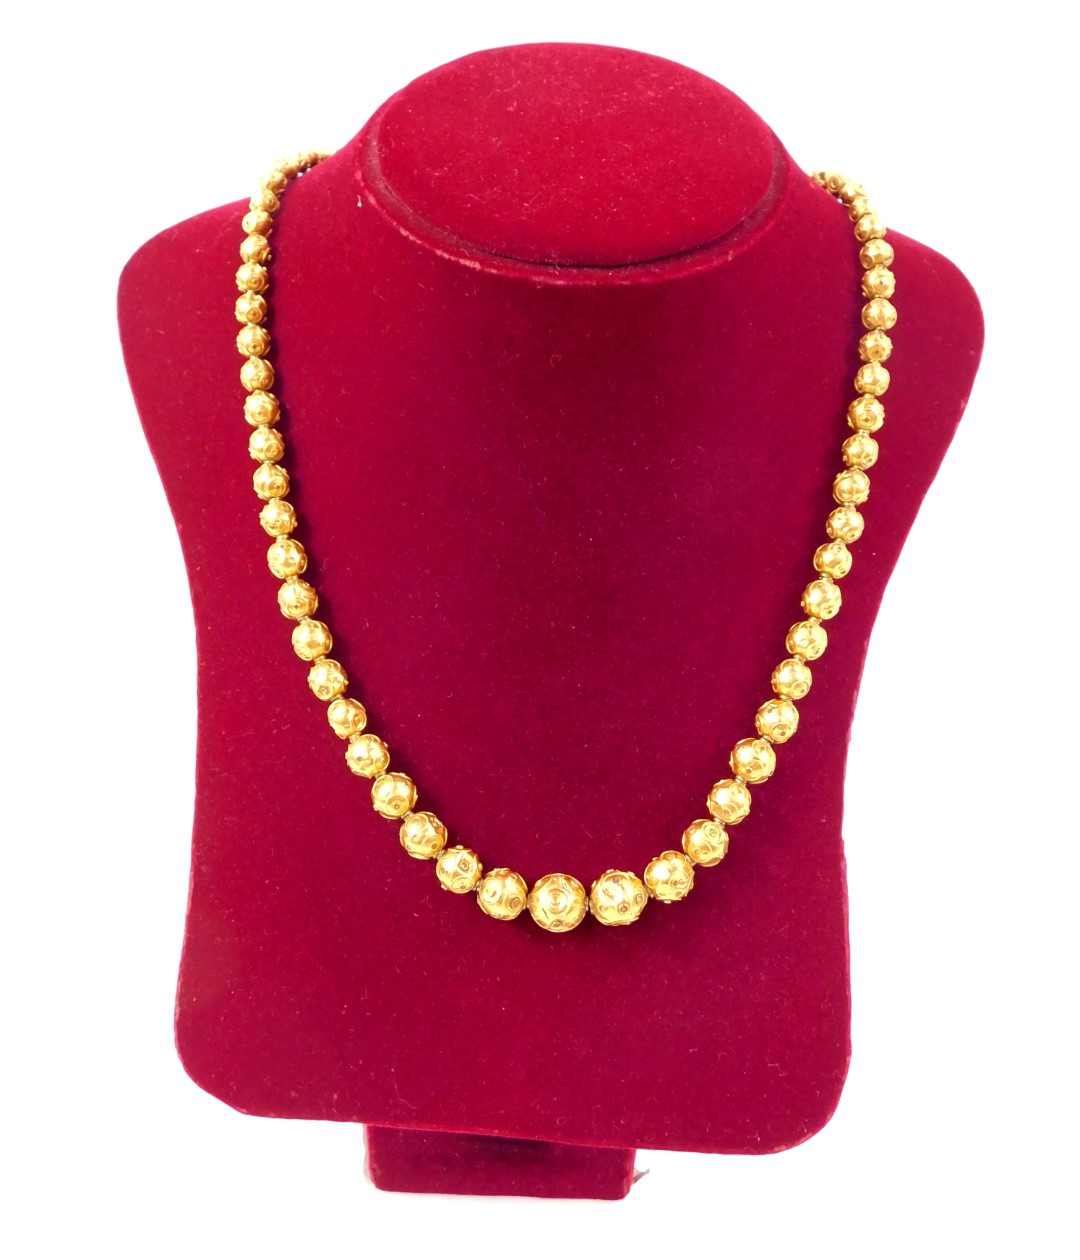 Lot 40 - A Continental early 20thC necklace, of graduated ornamental yellow metal balls, on a barrel clasp,